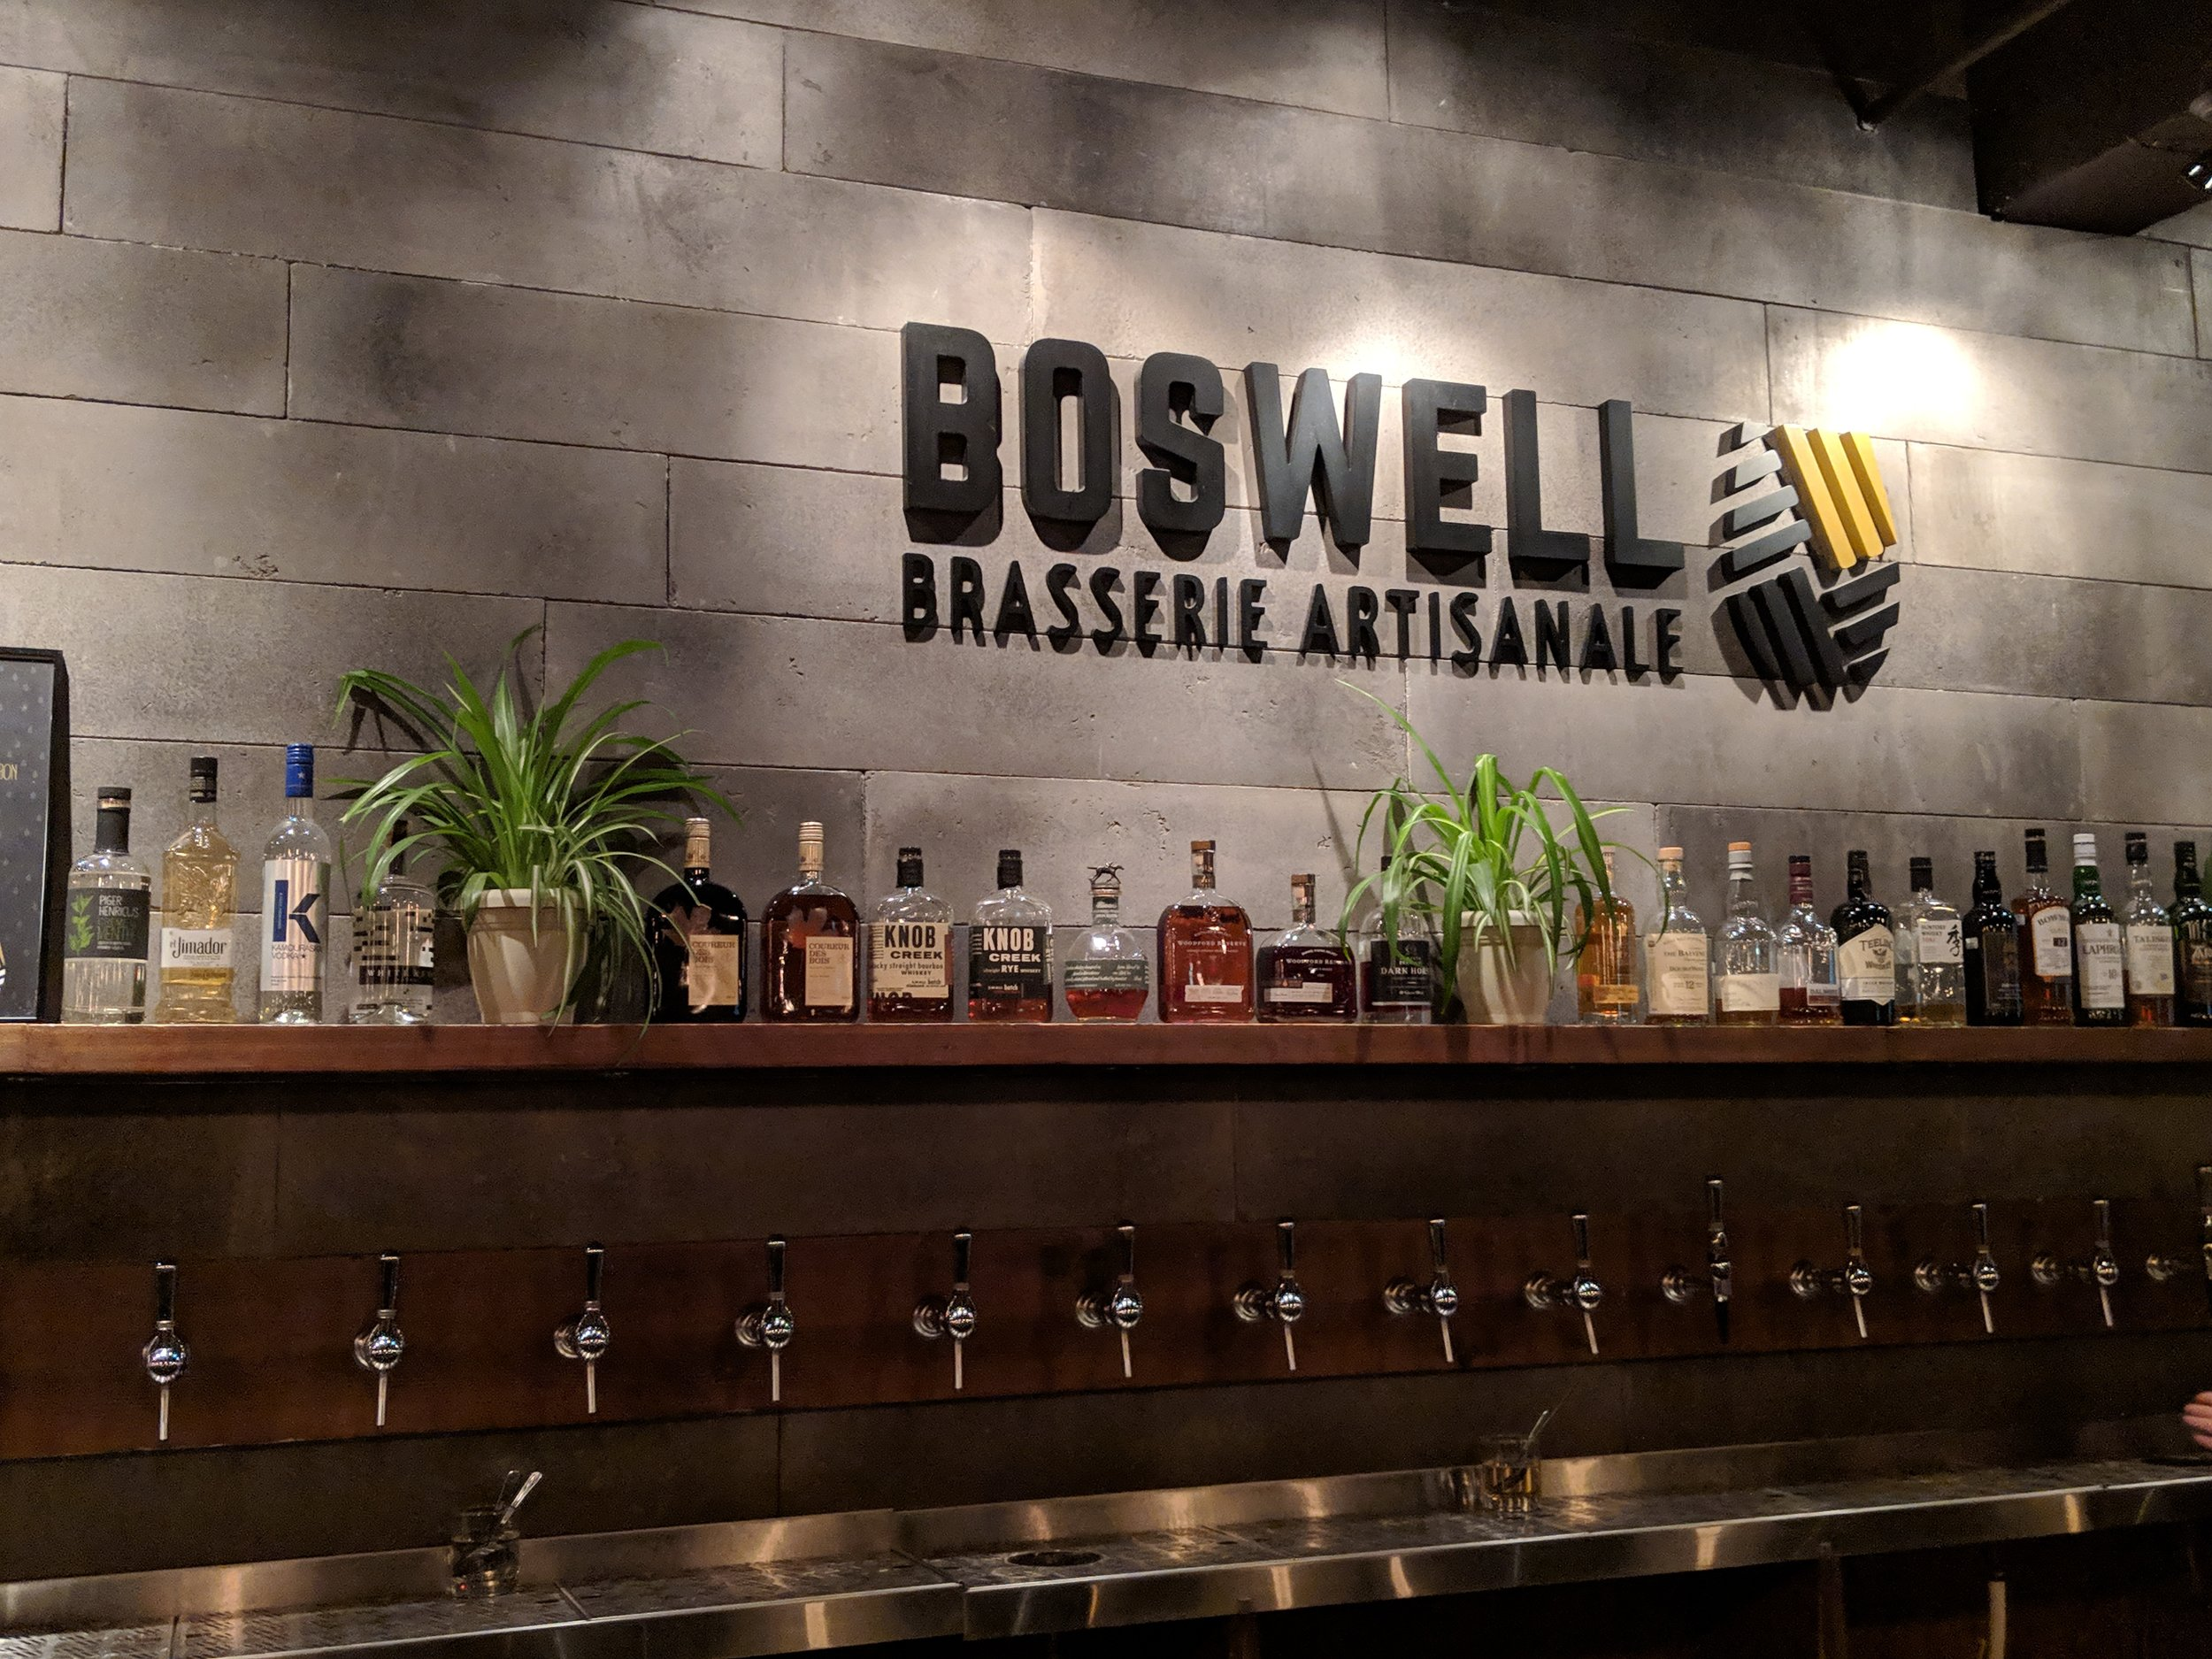 Boswell. A guide of Montreal breweries